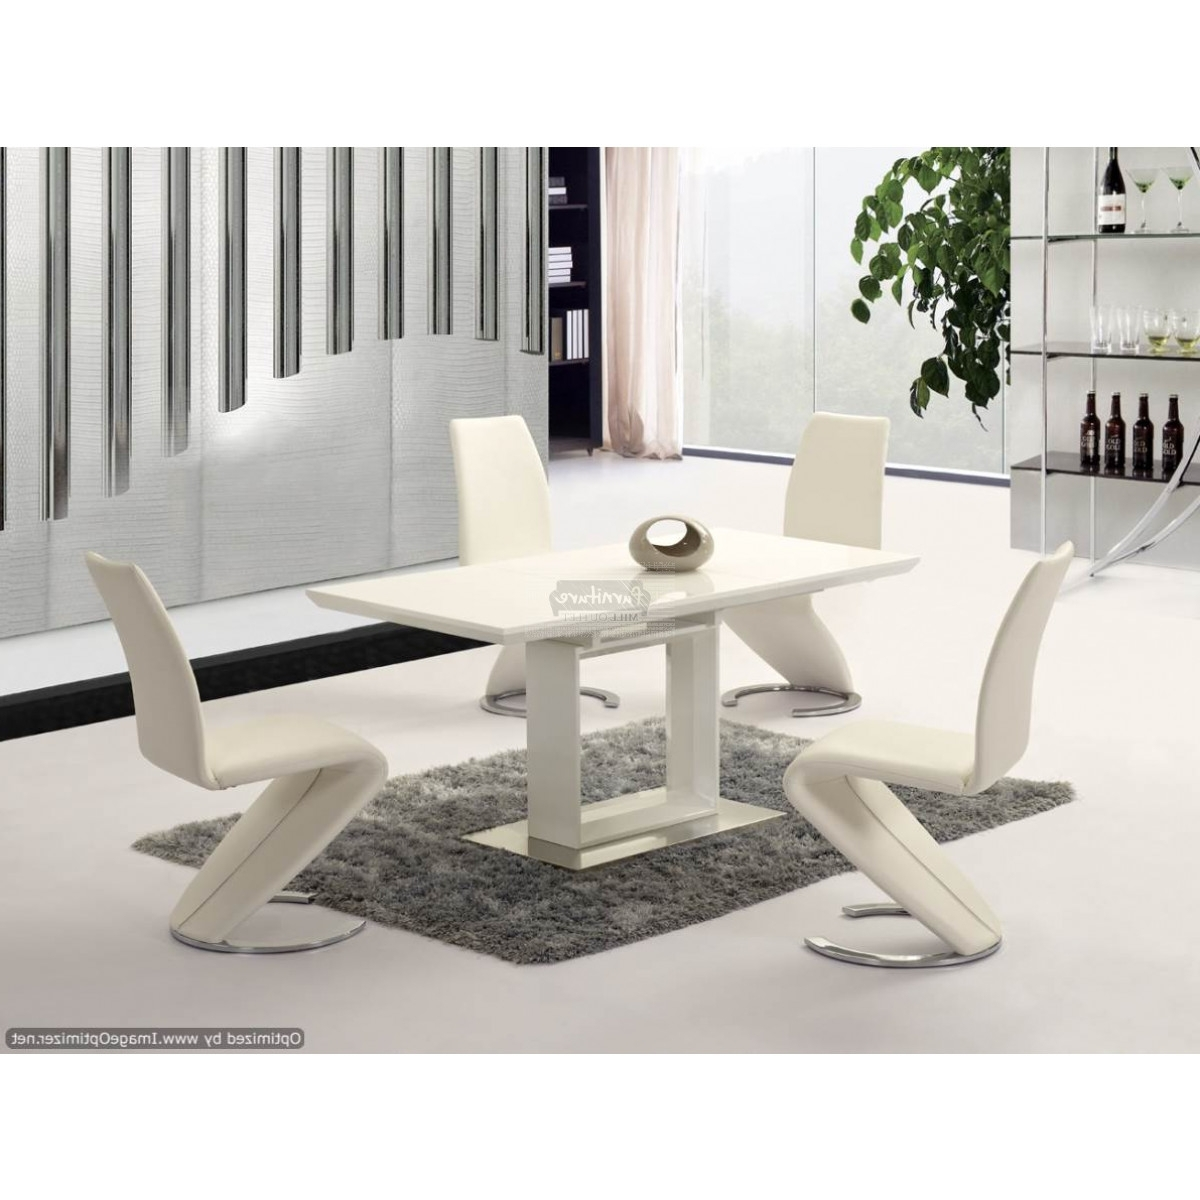 High Gloss Round Dining Tables With Widely Used Space White High Gloss Extending Dining Table – 120Cm To 160Cm (View 14 of 25)